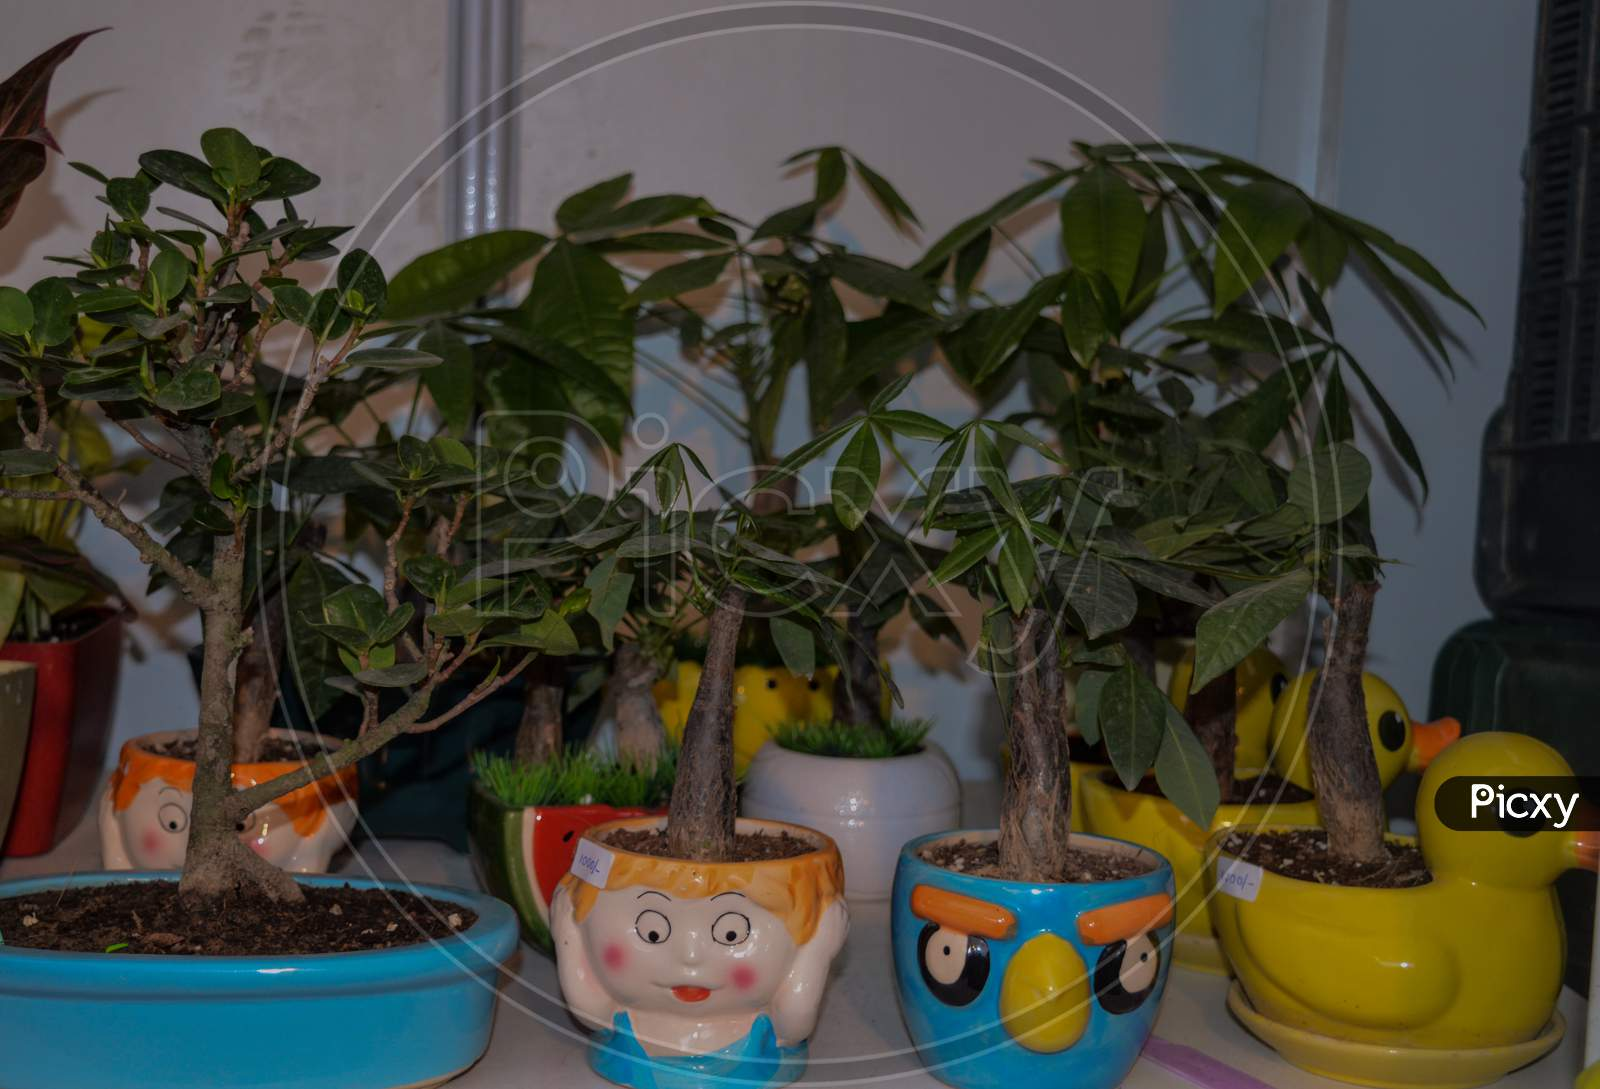 A Group Of Plants For Sale At Stall In Cute Pot.